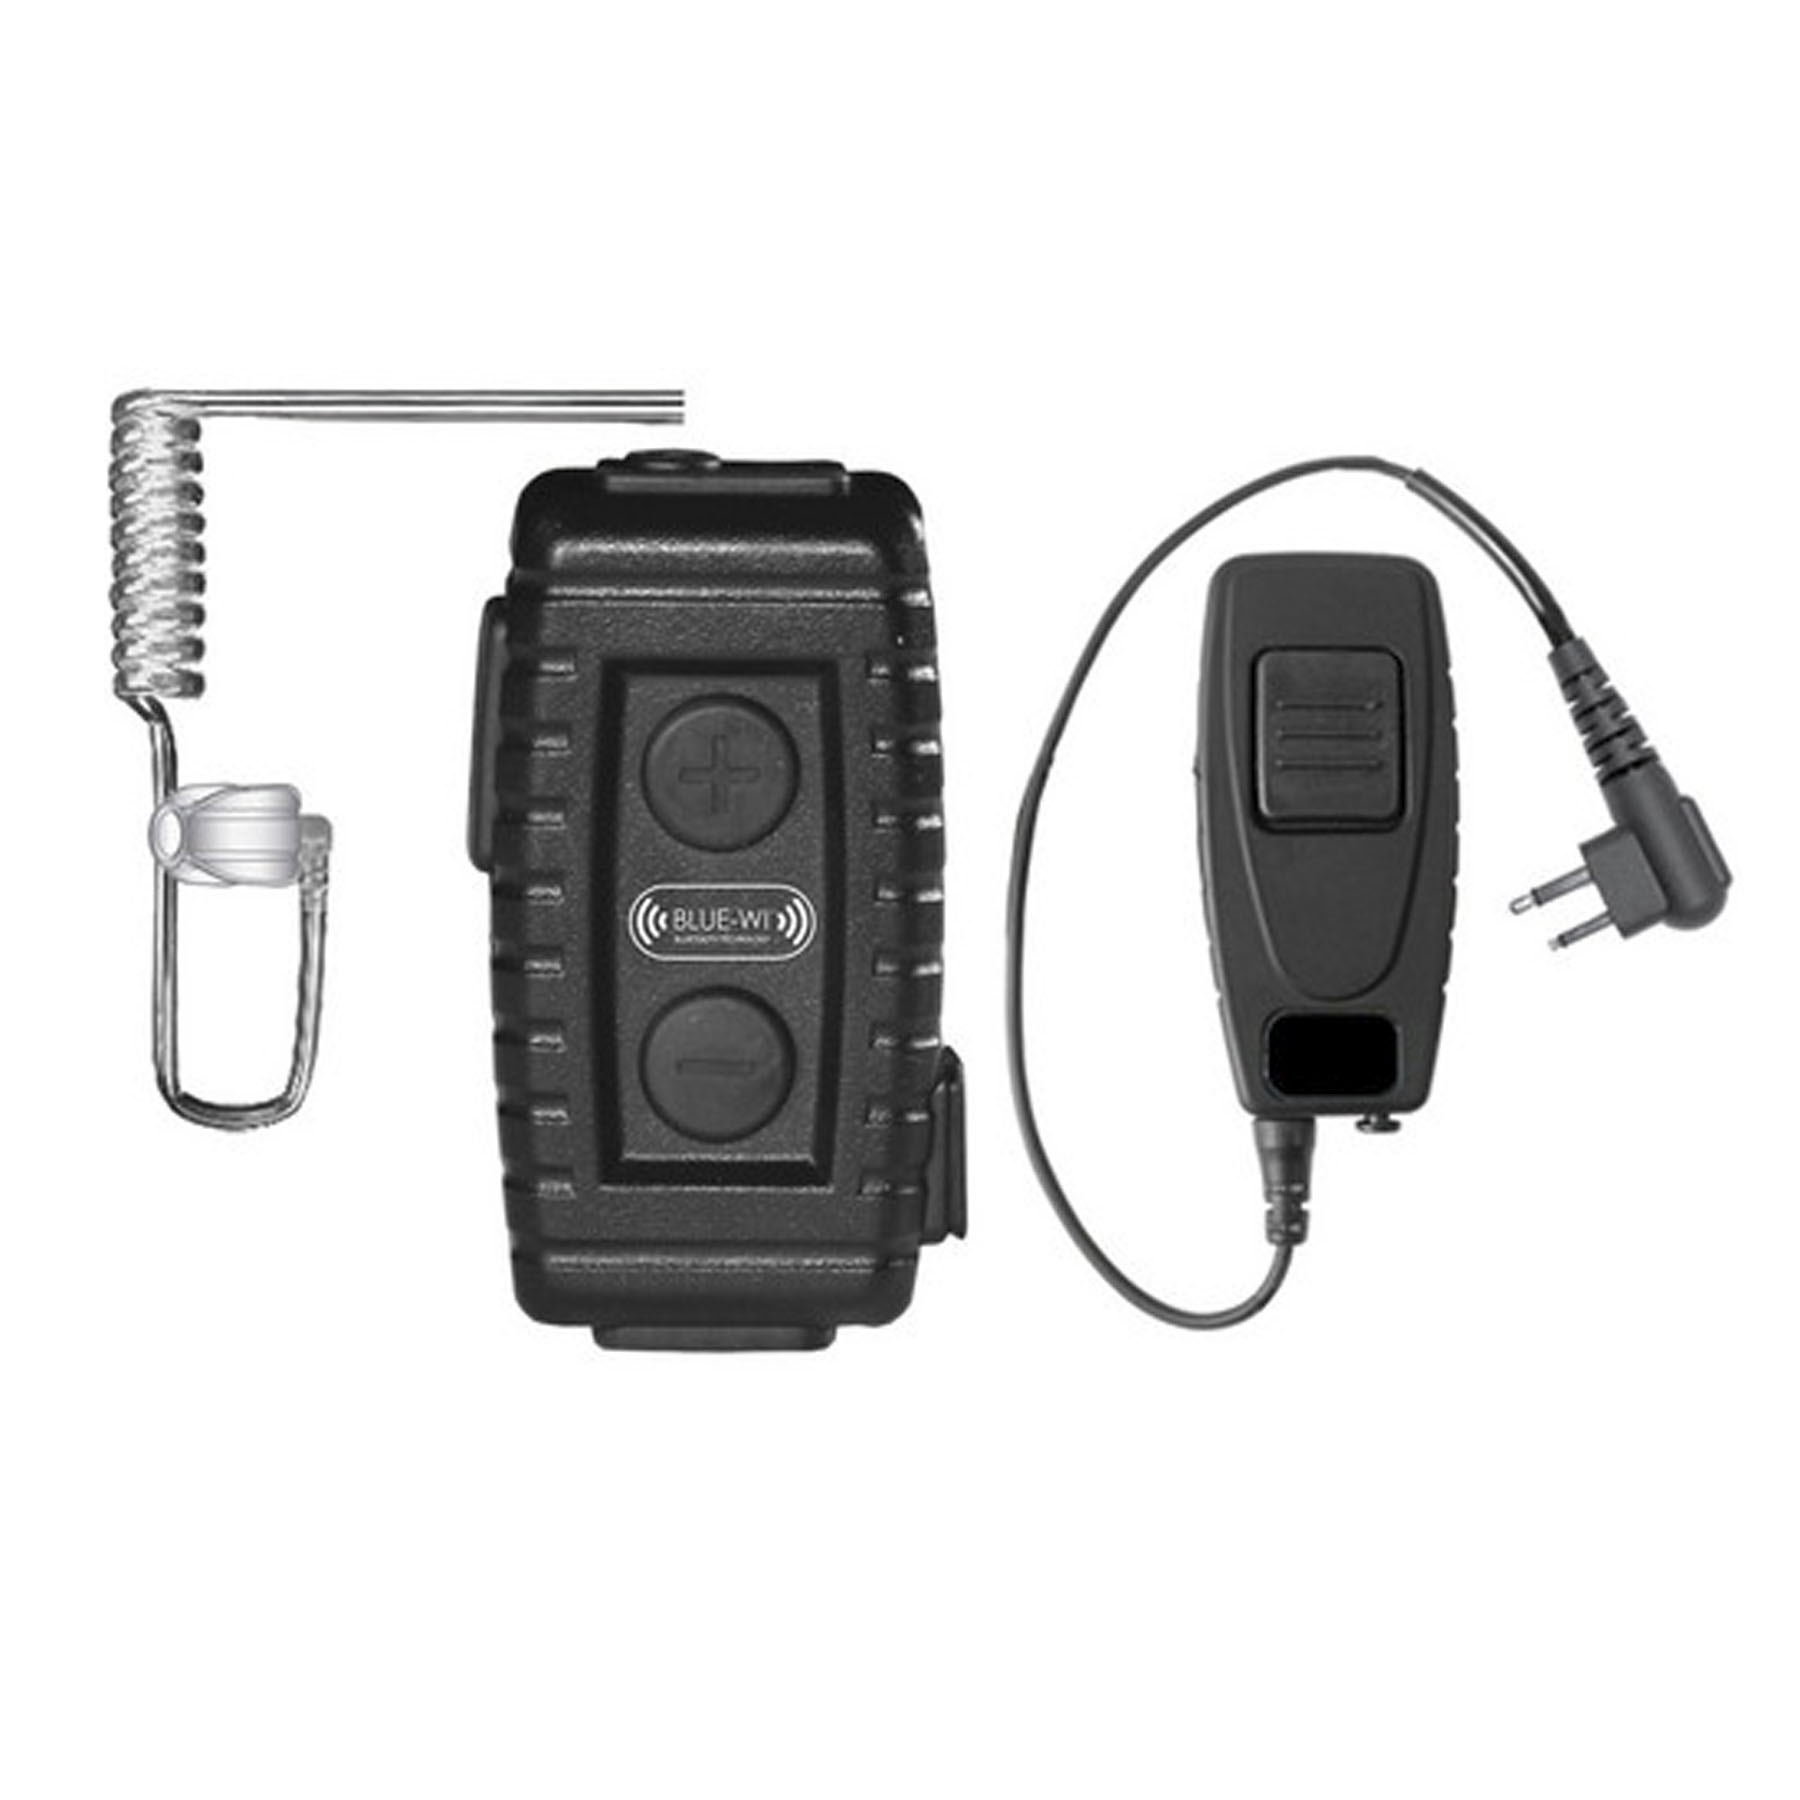 BLUE-WI Nighthawk Tactical Bluetooth Lapel Mic